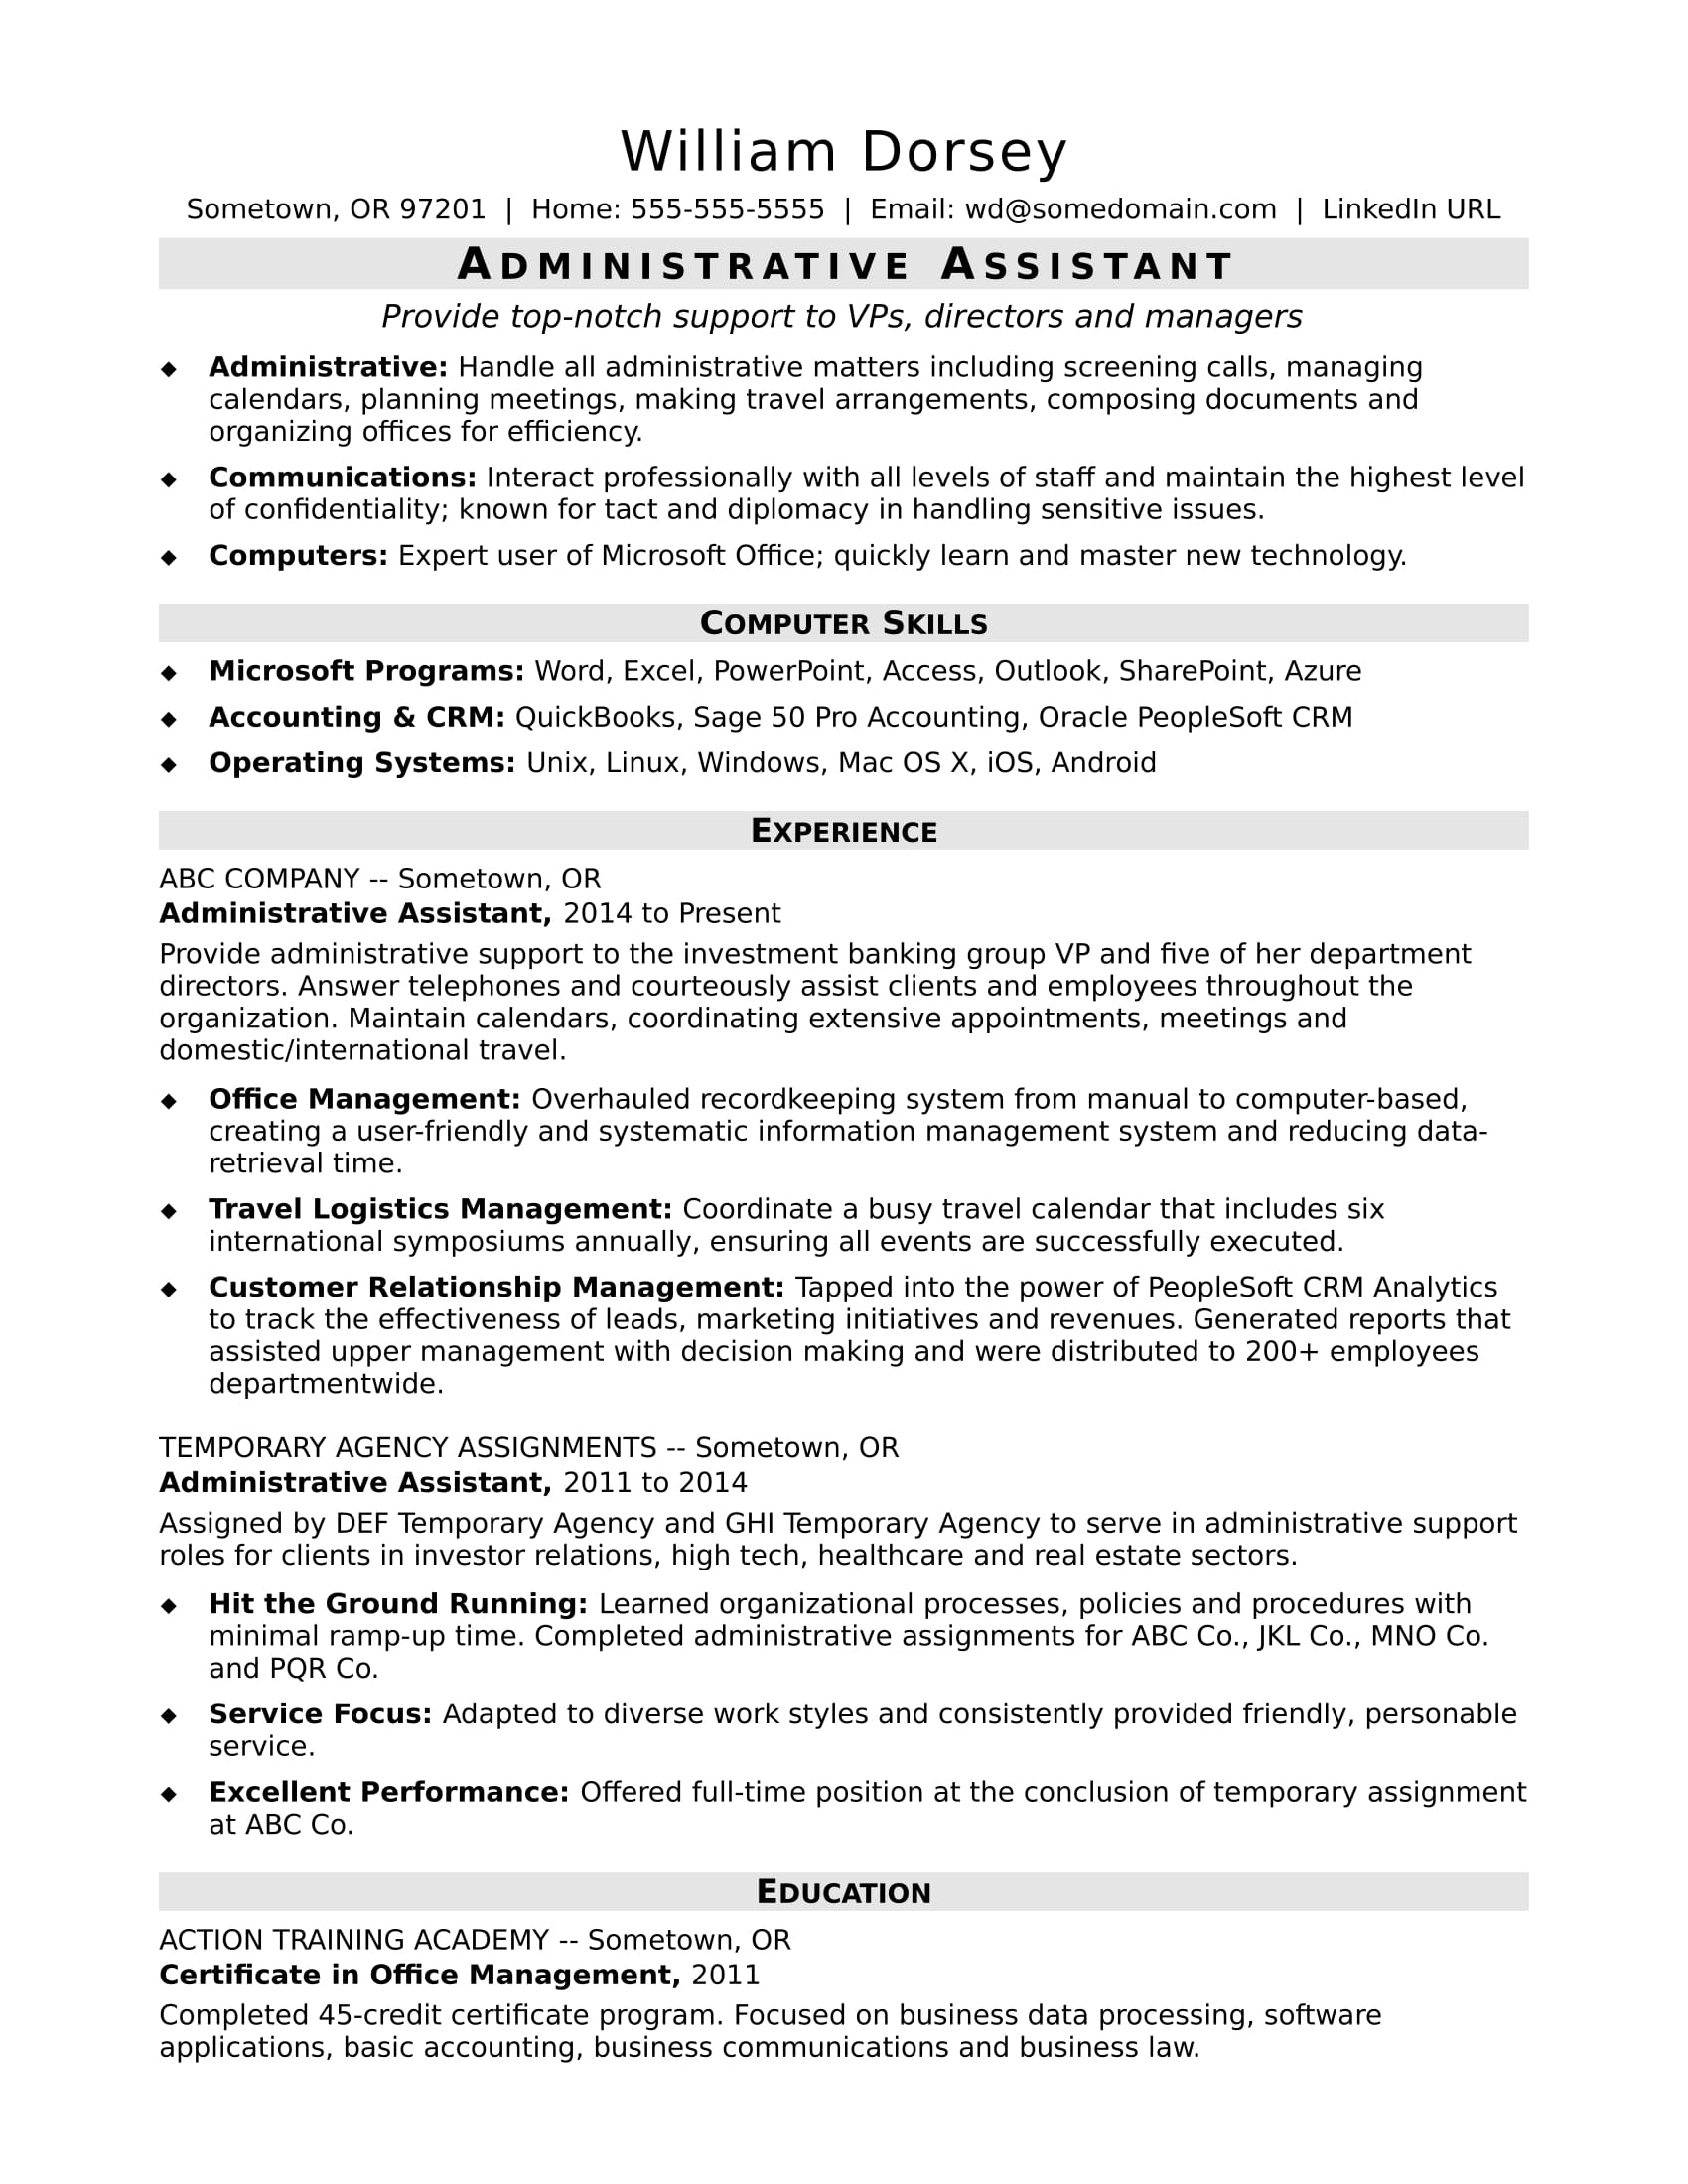 midlevel administrative assistant resume sample monster title babysitter description Resume Administrative Assistant Resume Title